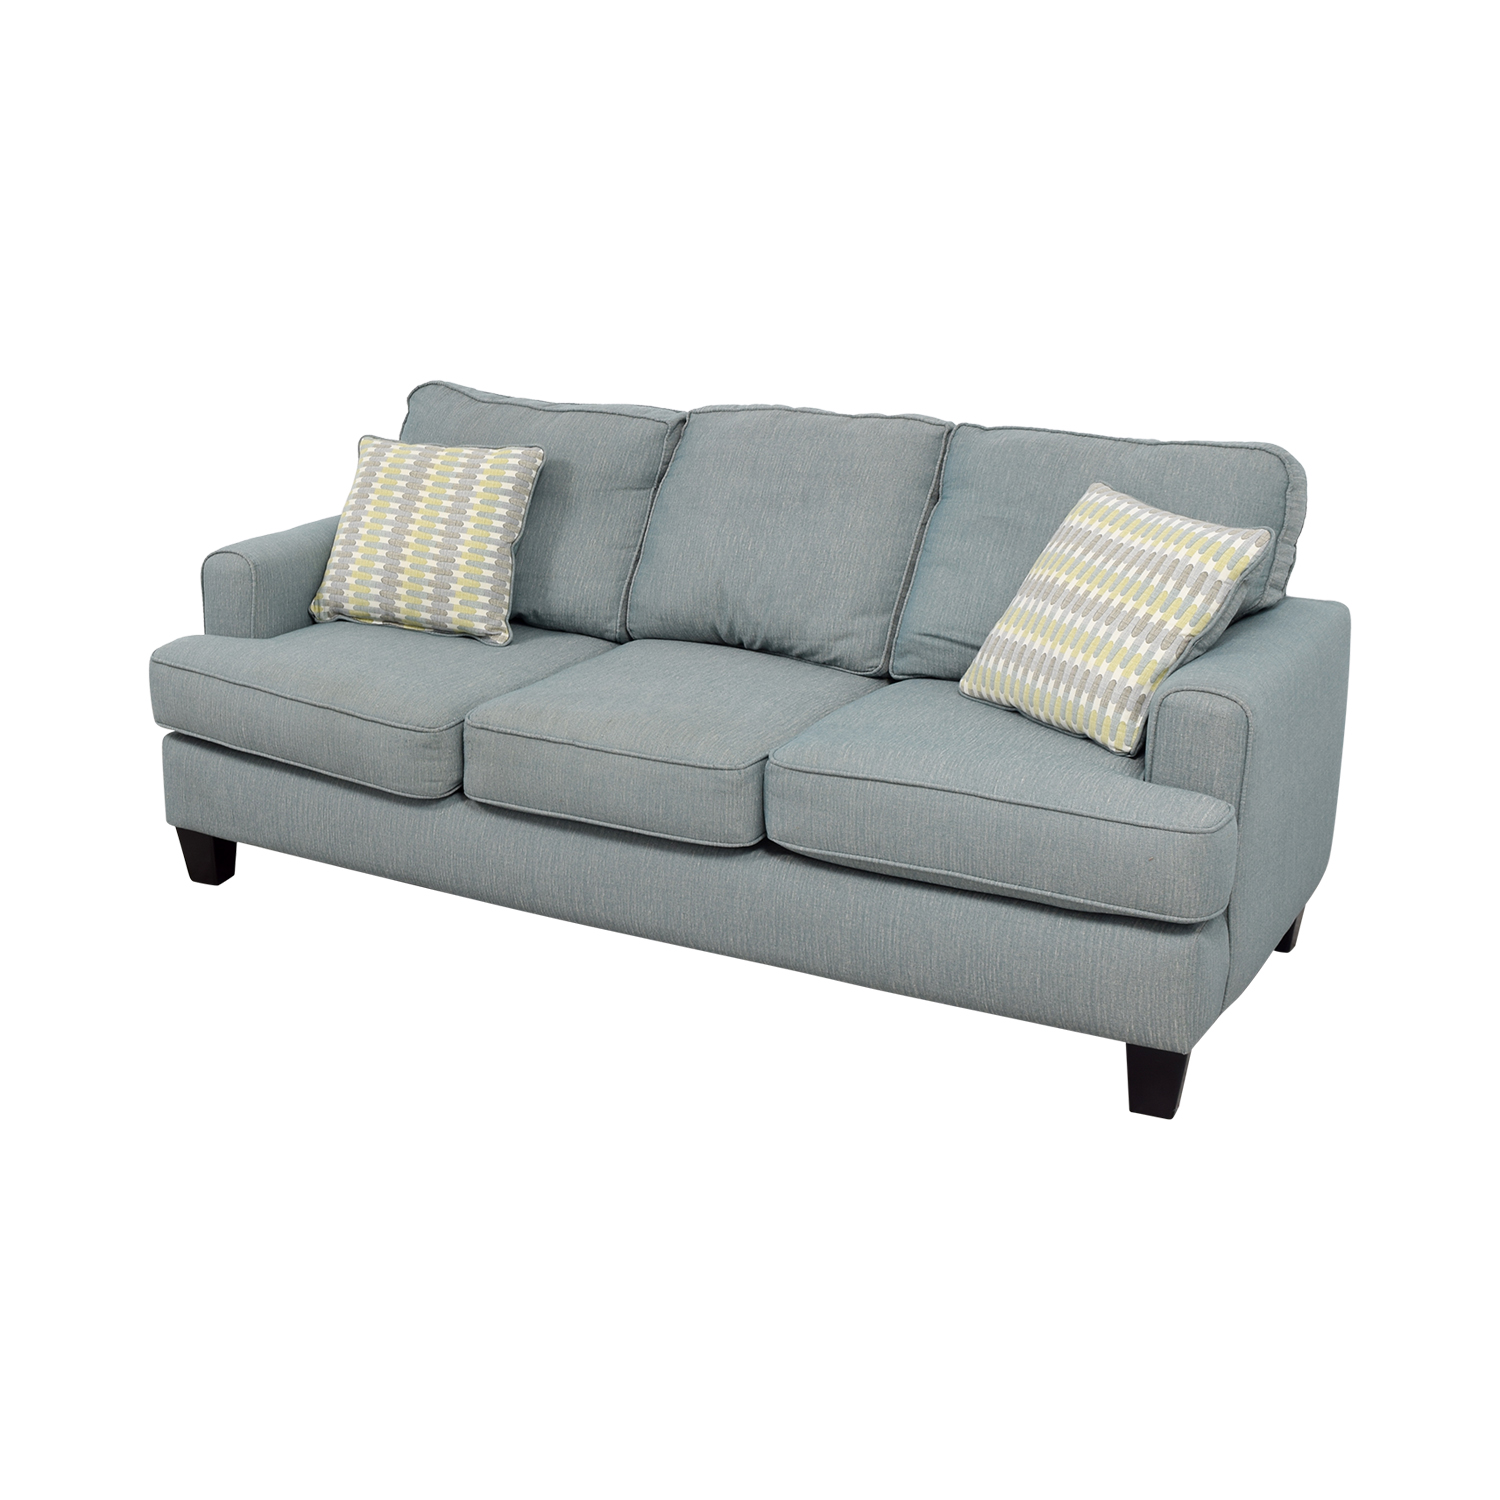 Raymour and Flanigan Raymour and Flanigan Willoughby Blue Three Seater Sofa price